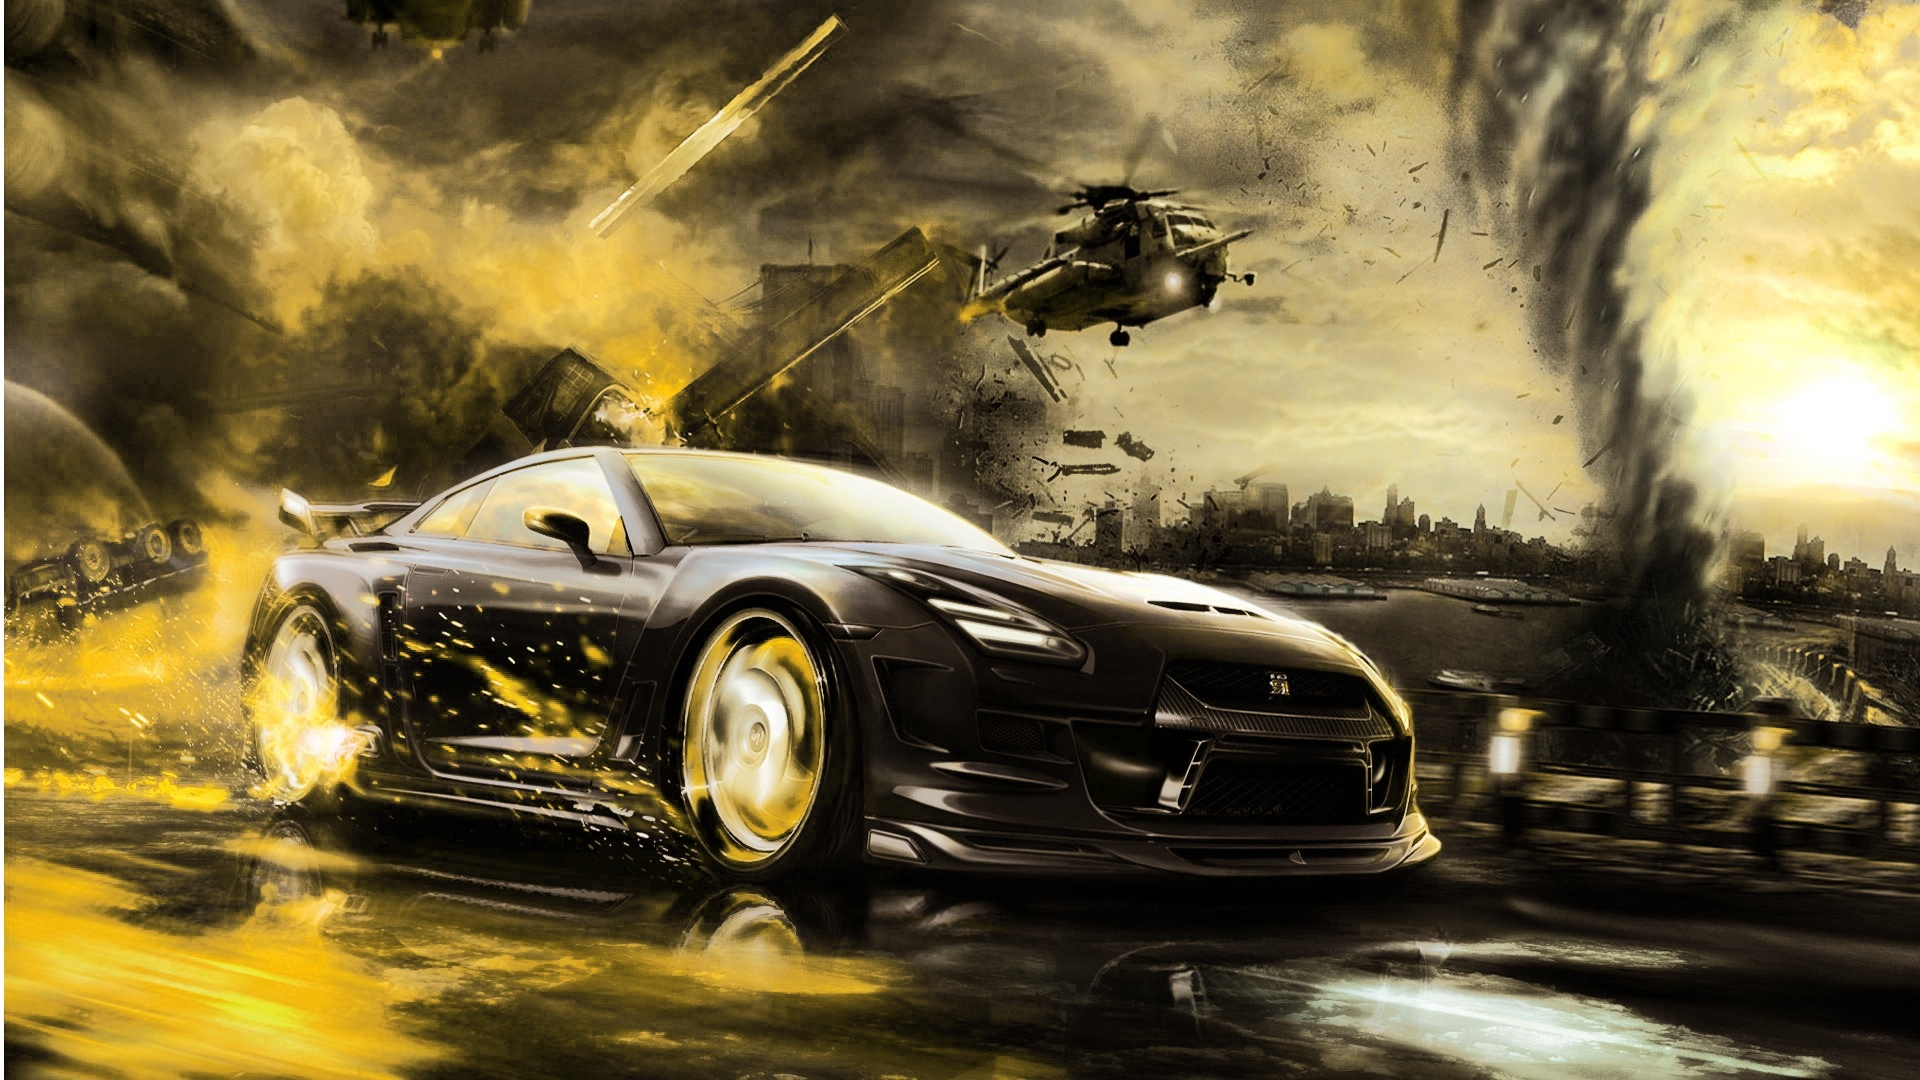 Awesome Wallpapers Of Cars